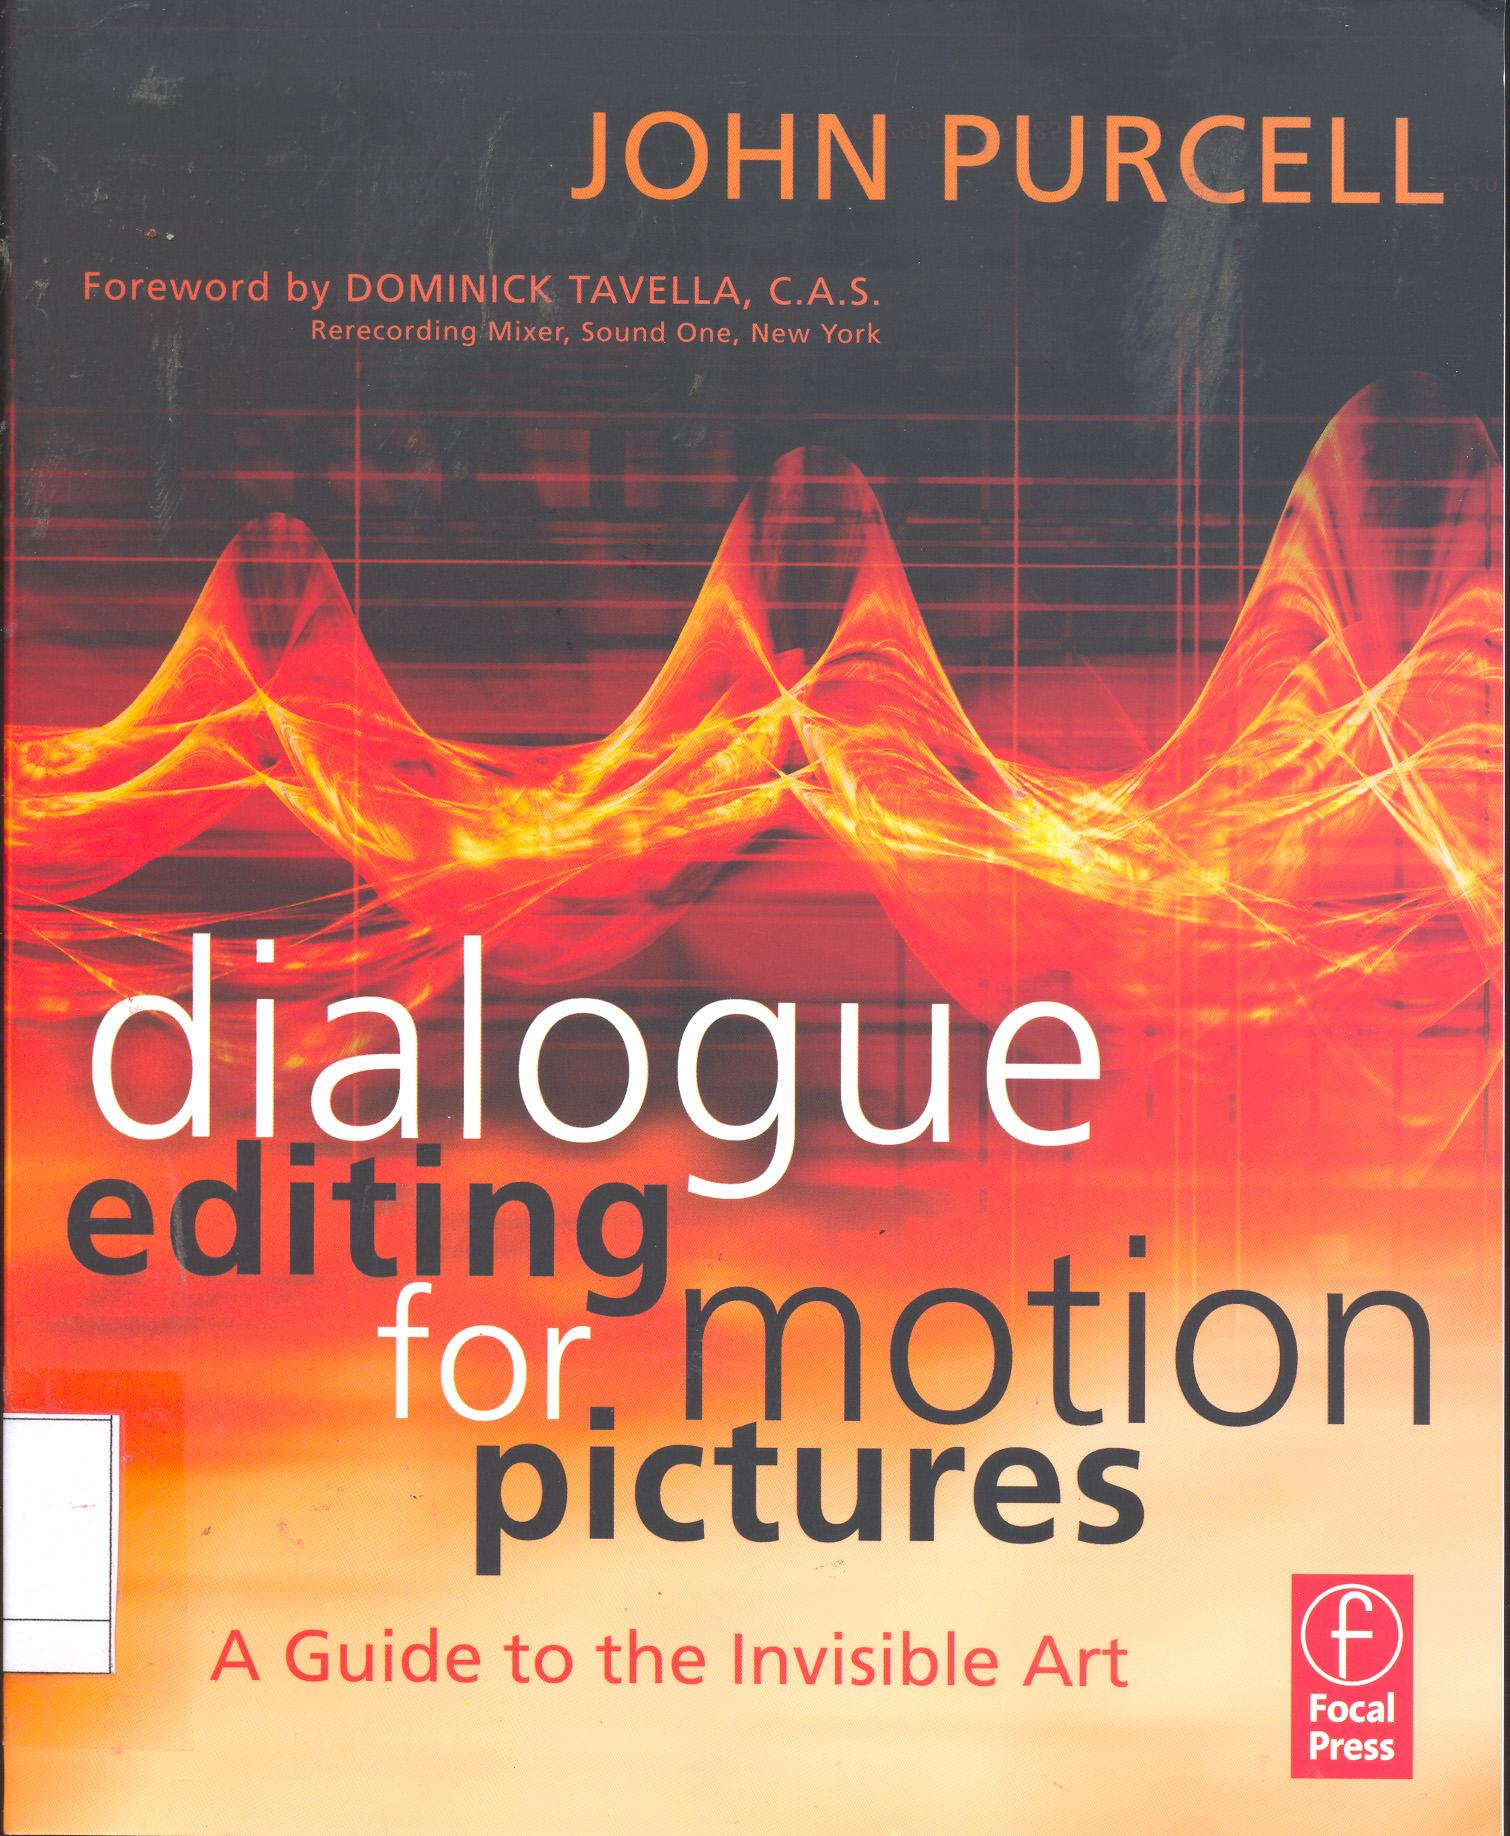 Dialog editing for motion pictures